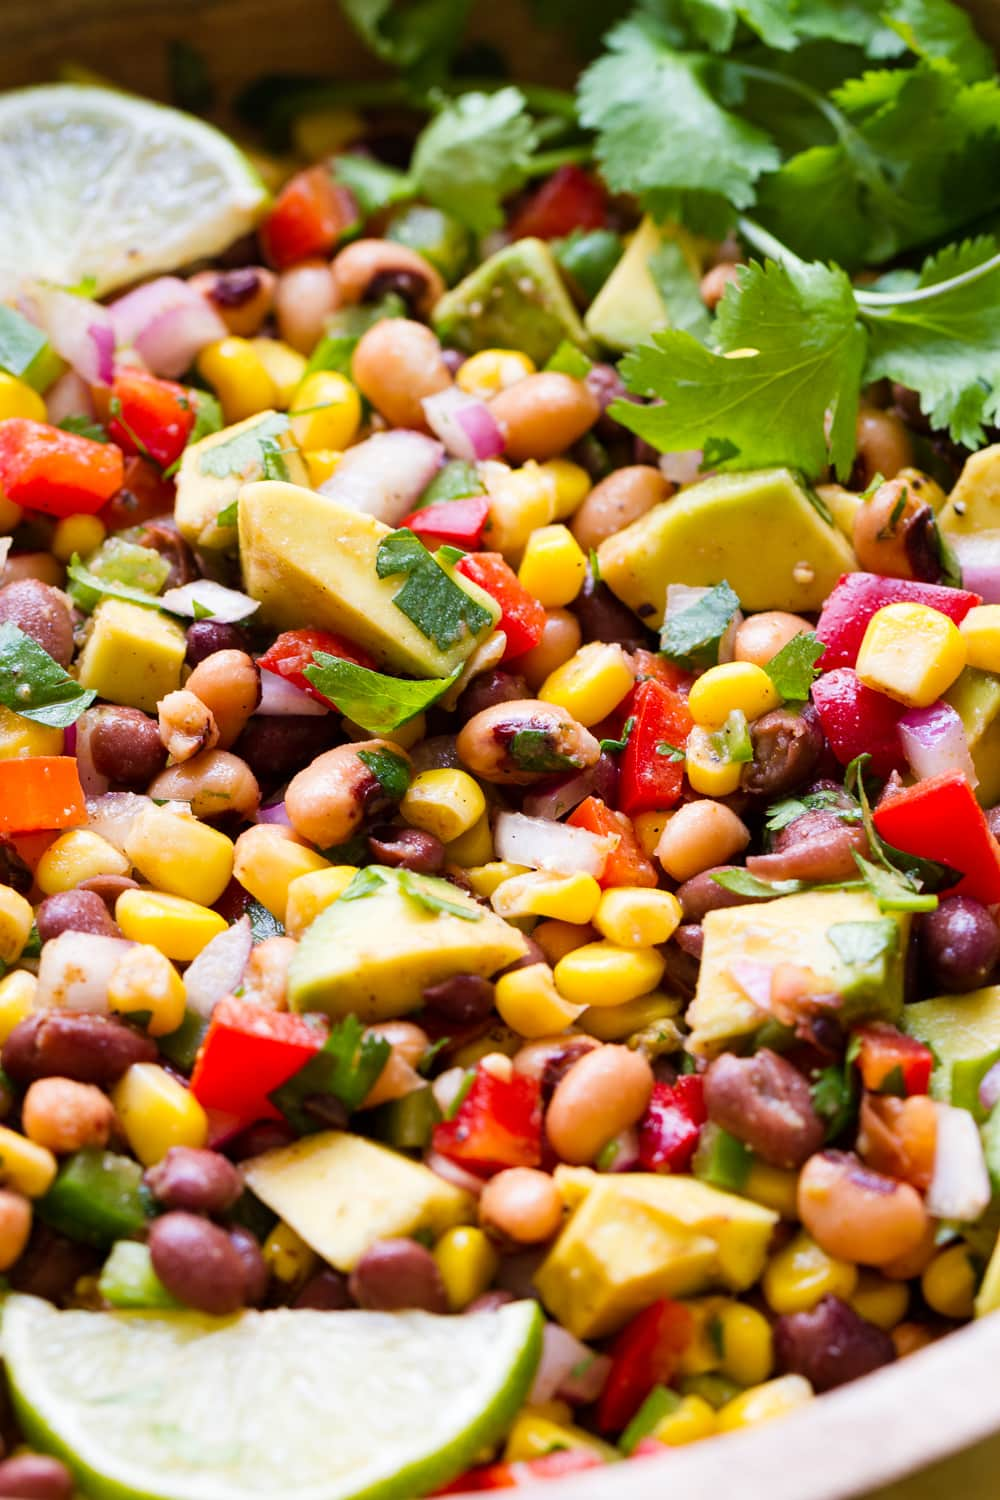 up close, side angle view of freshly made Texas cowboy caviar